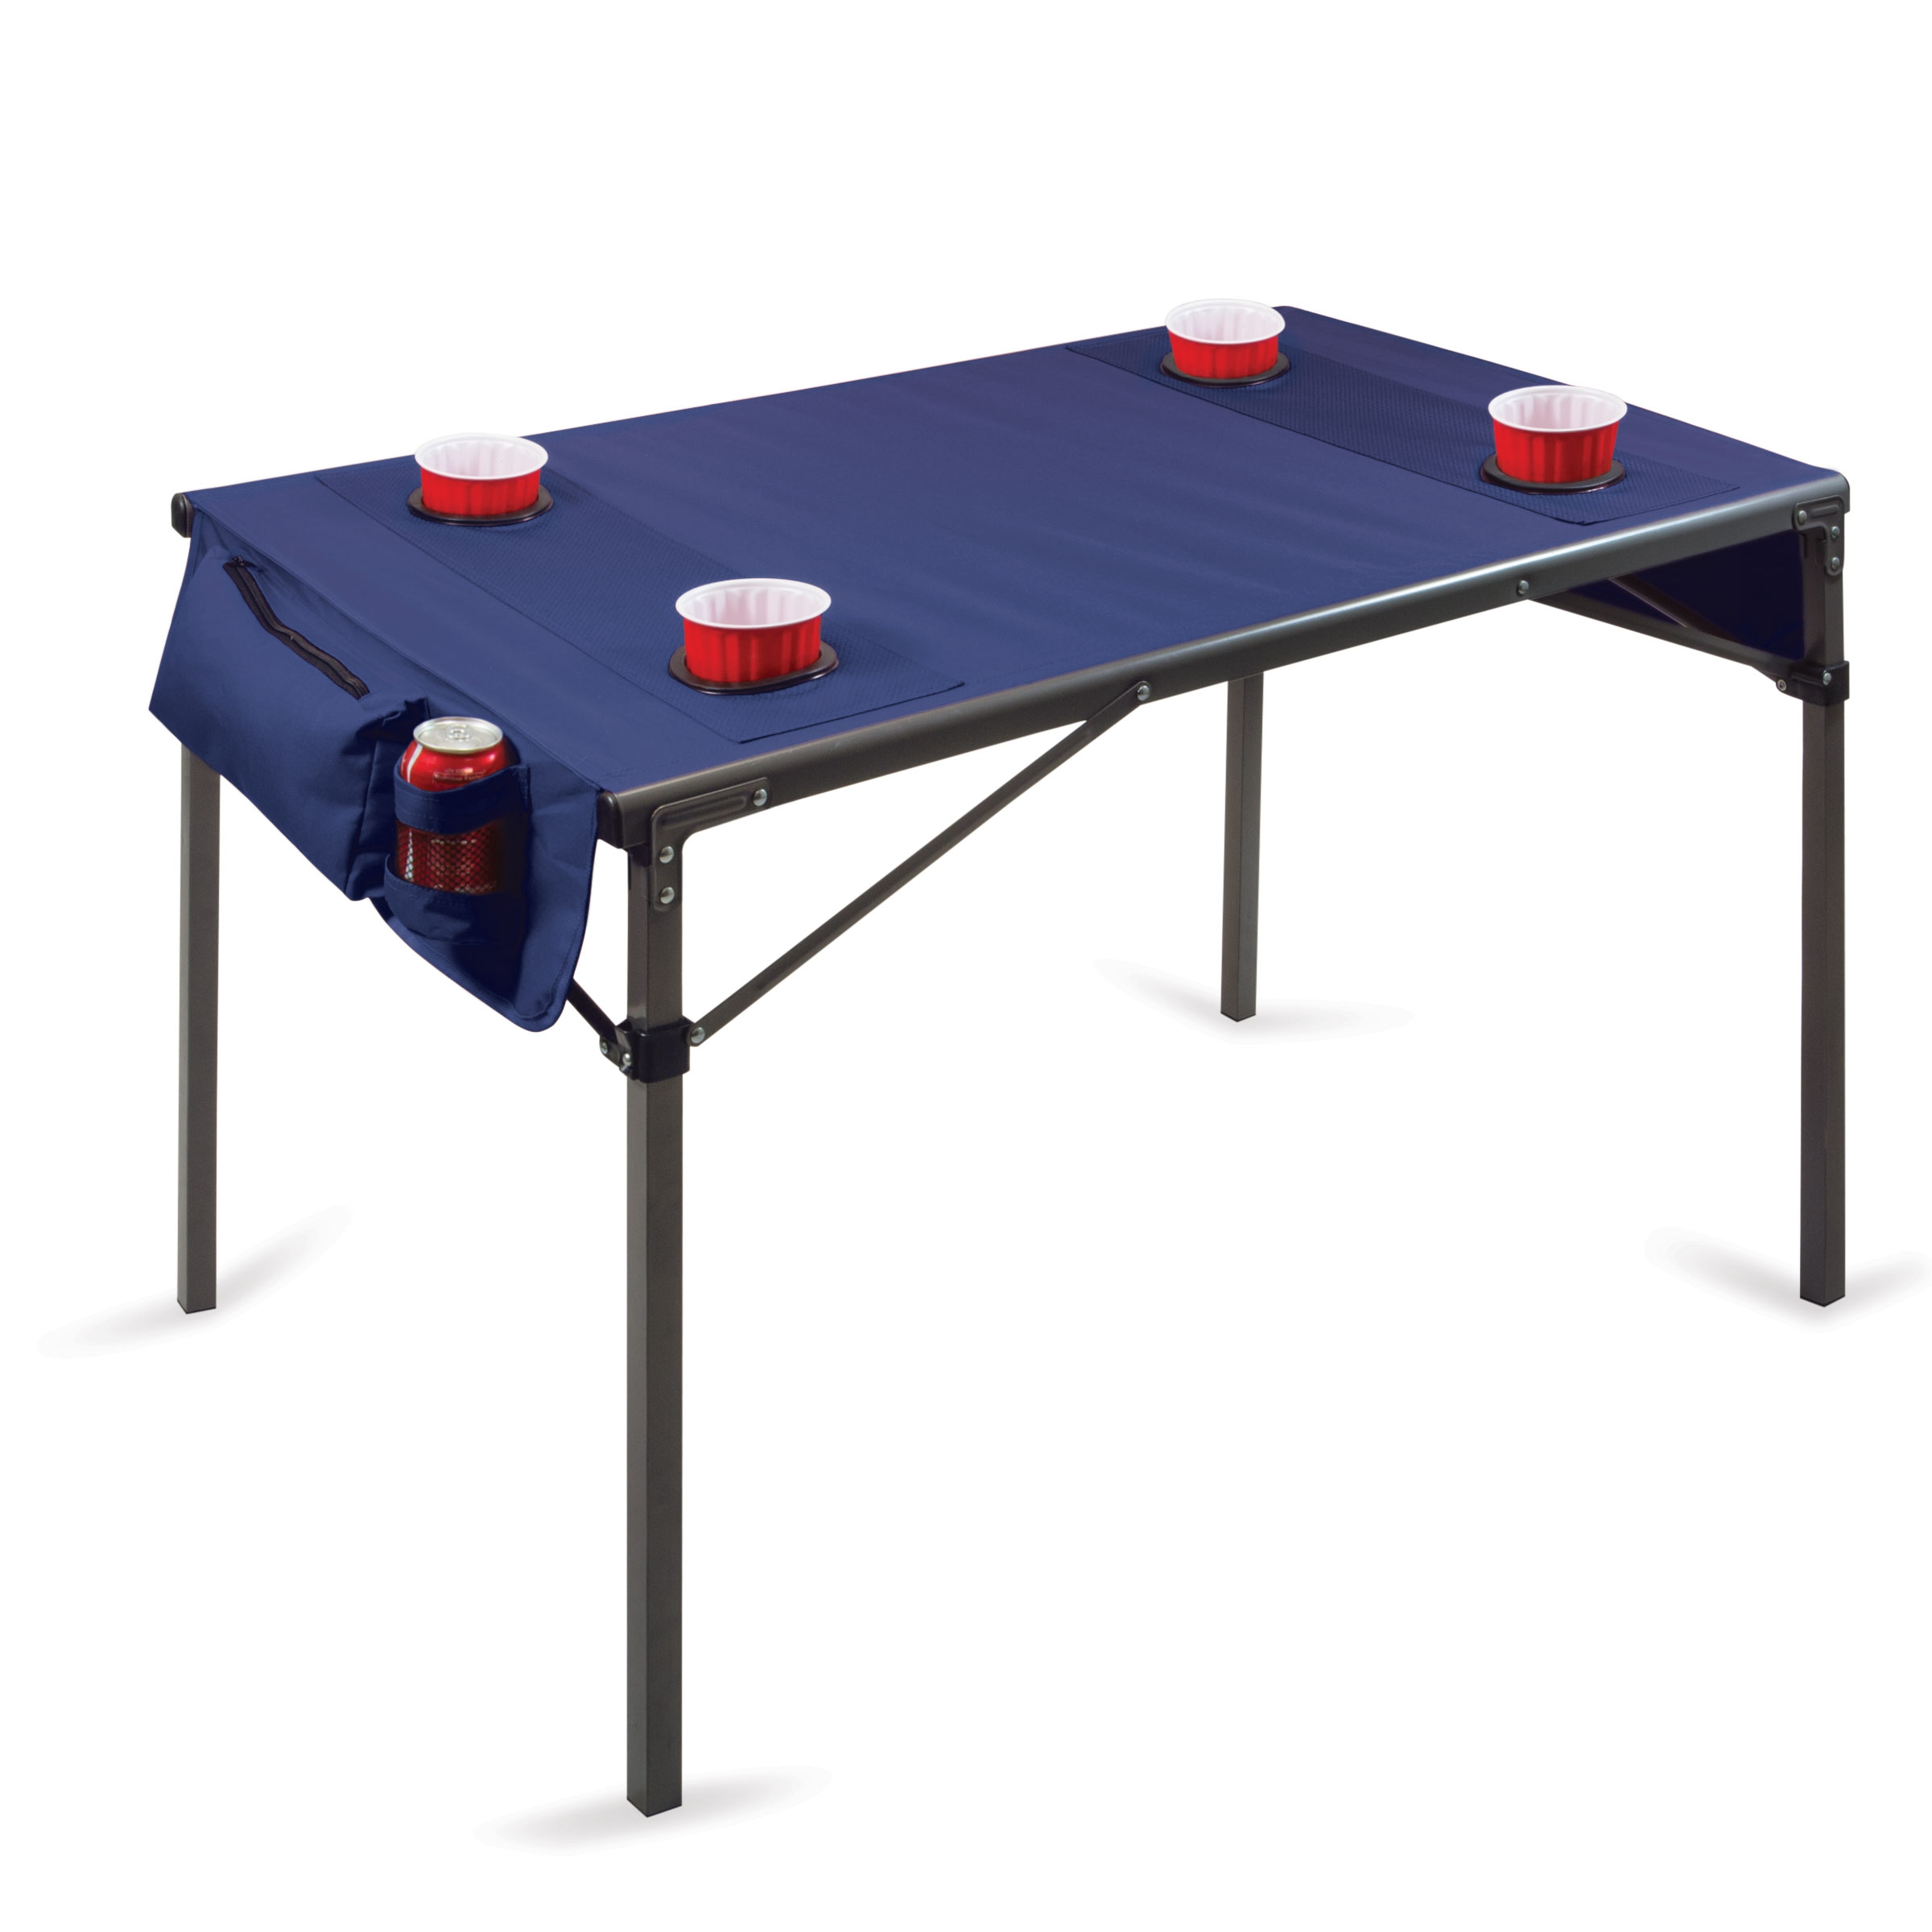 TRAVEL TABLE - This & That 4 You | 888.299.6190